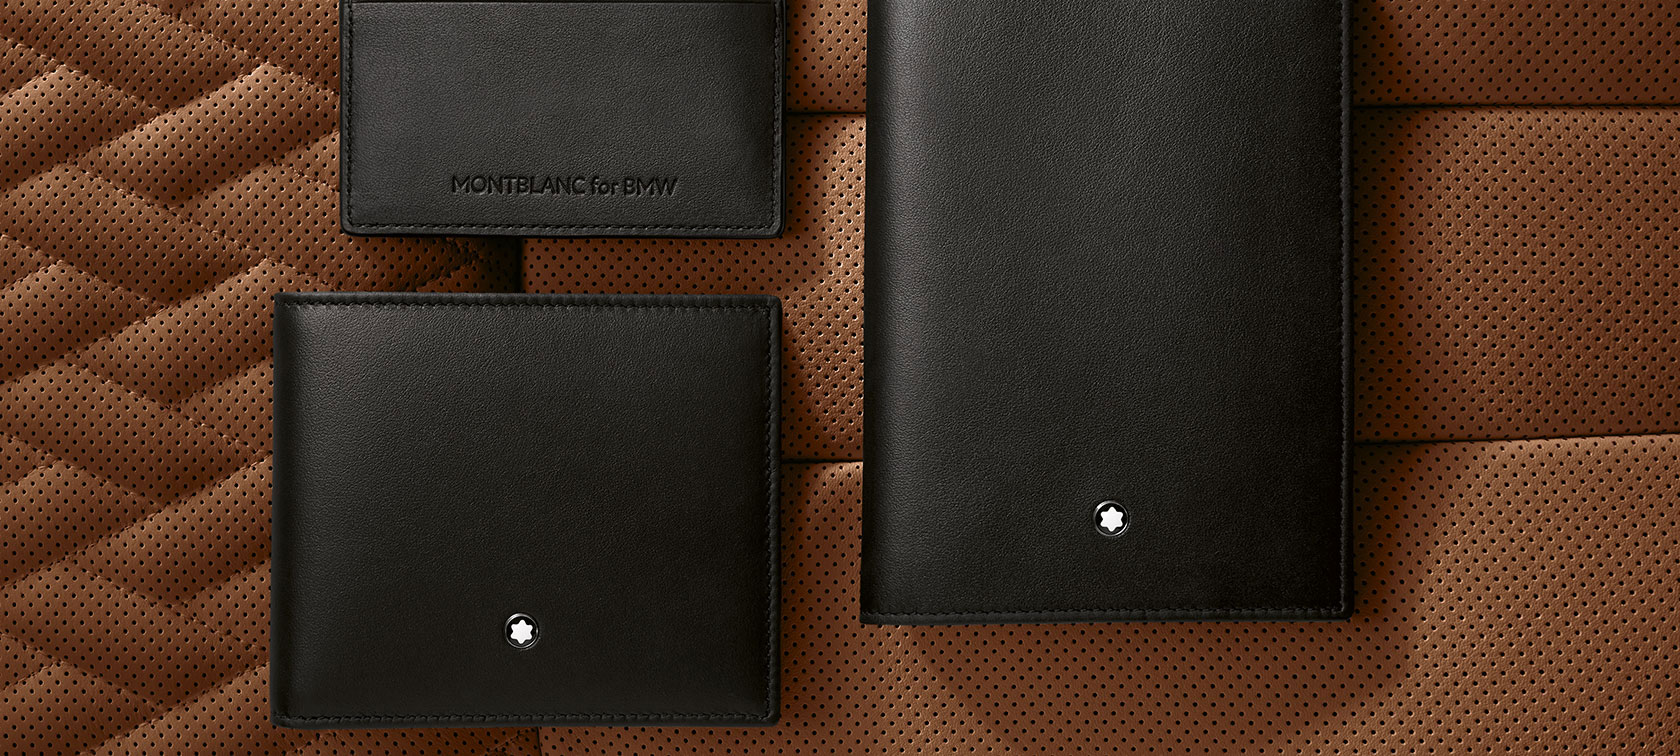 The picture shows the Montblanc for BMW Wallet with Coin Compartment.